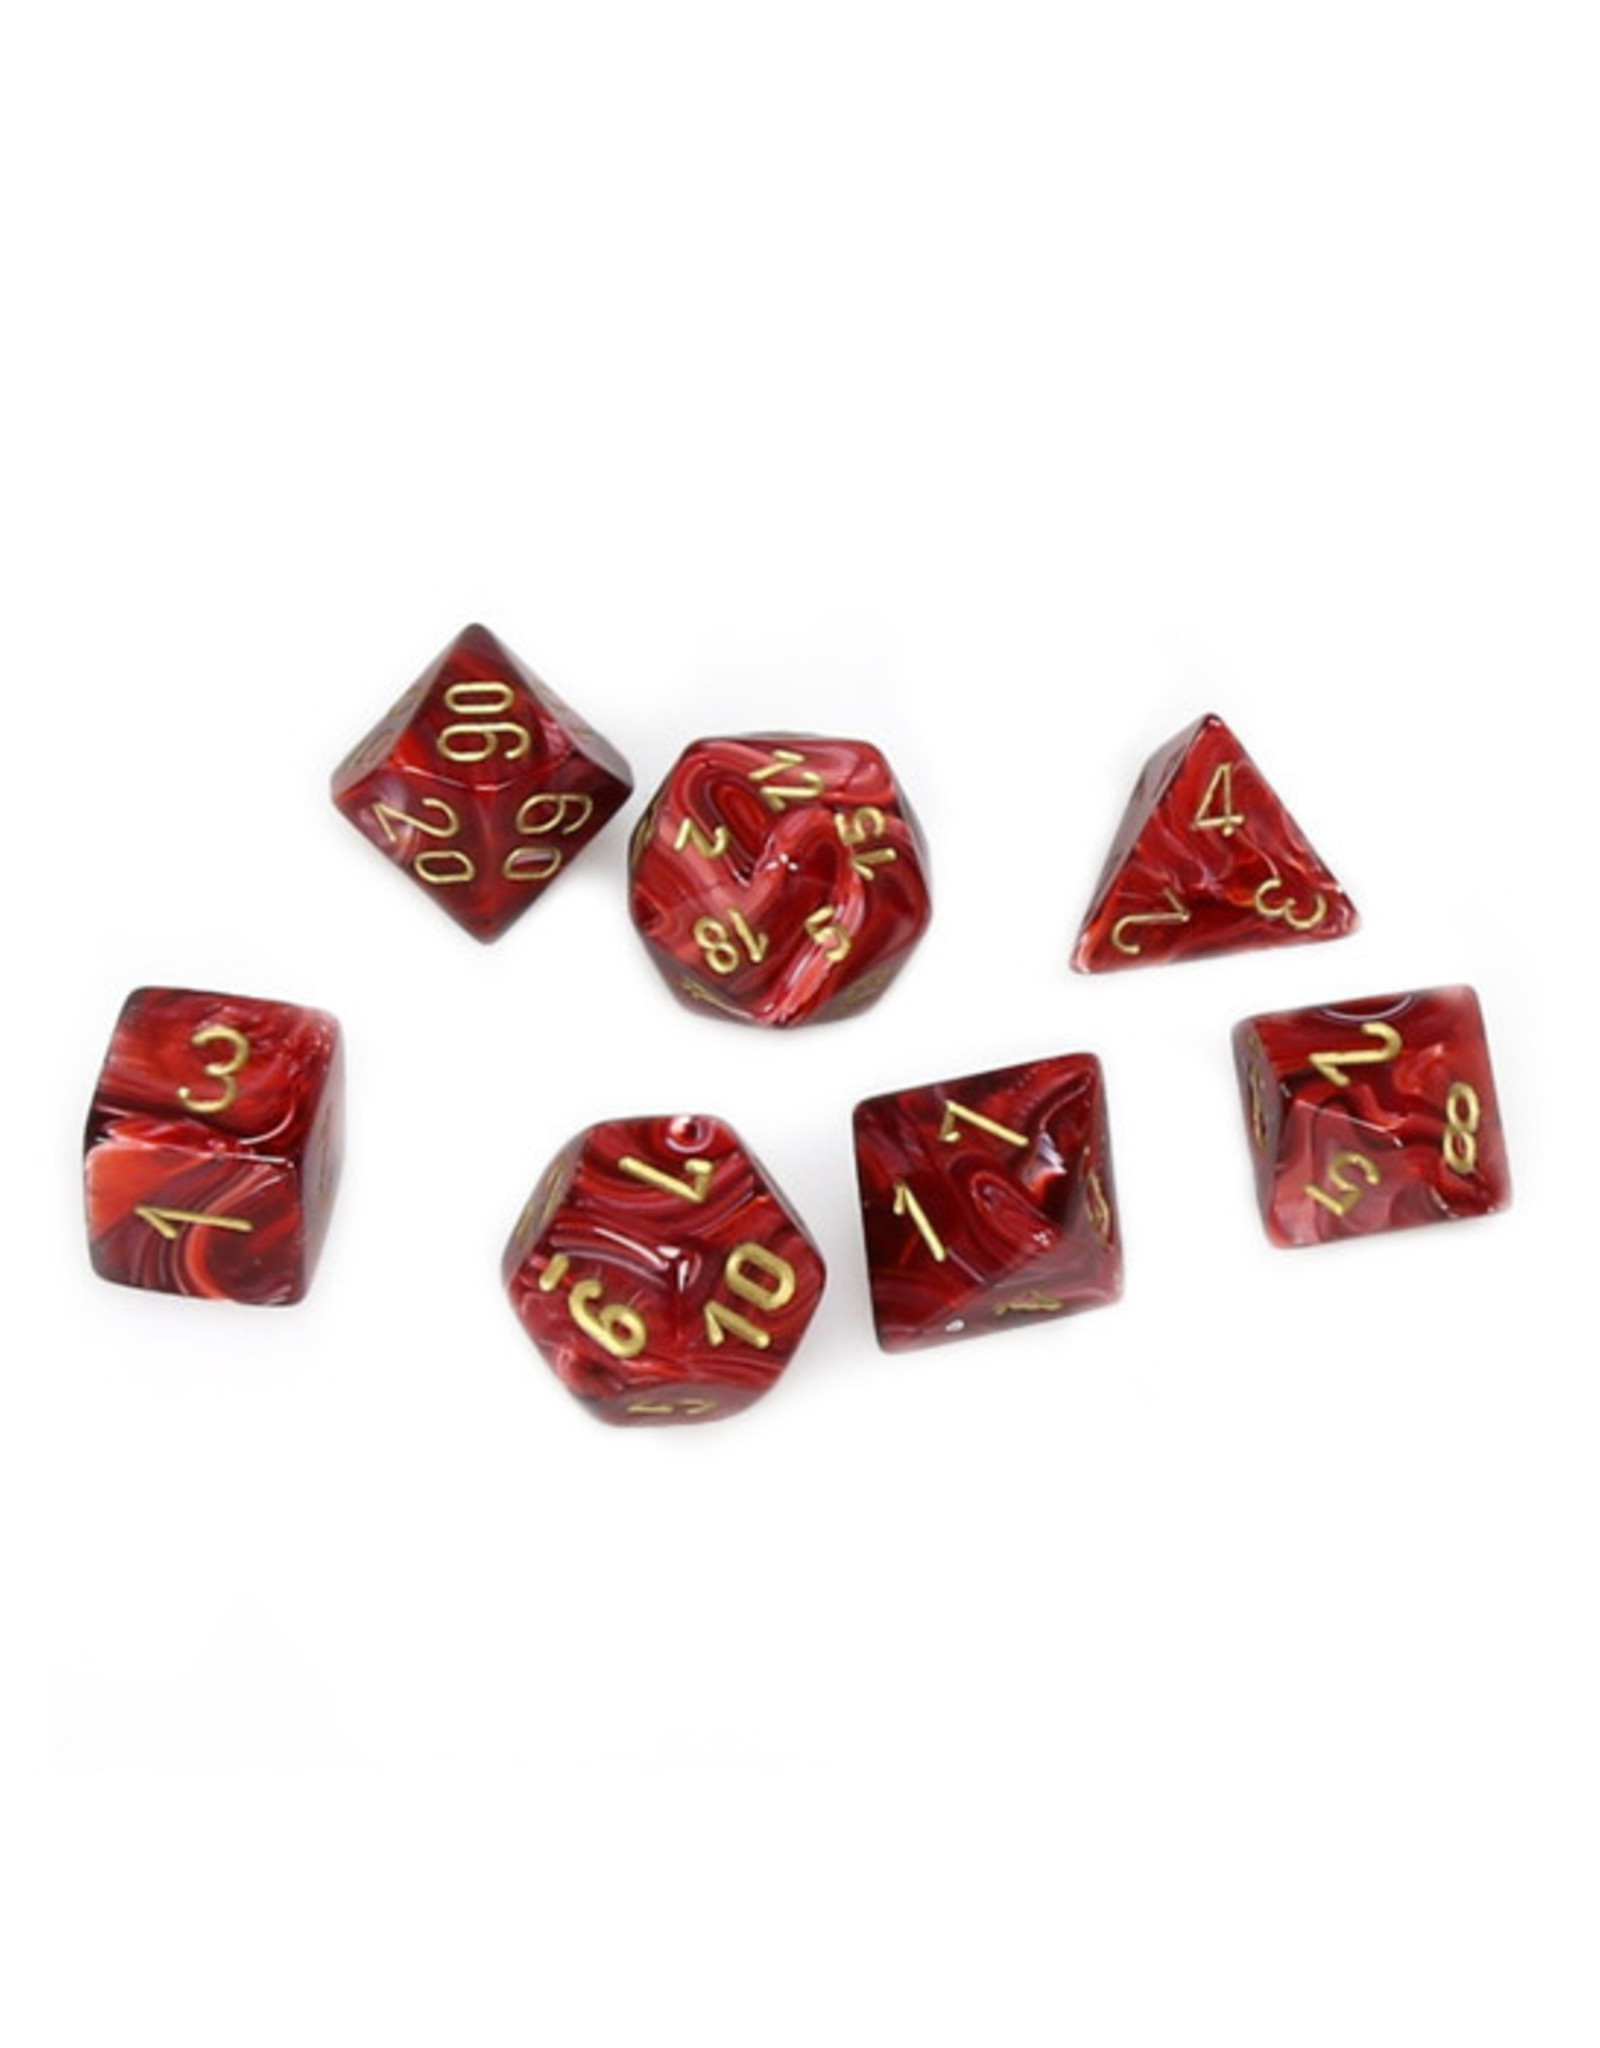 Chessex Chessex: Poly 7 Set - Vortex - Burgundy w/ Gold